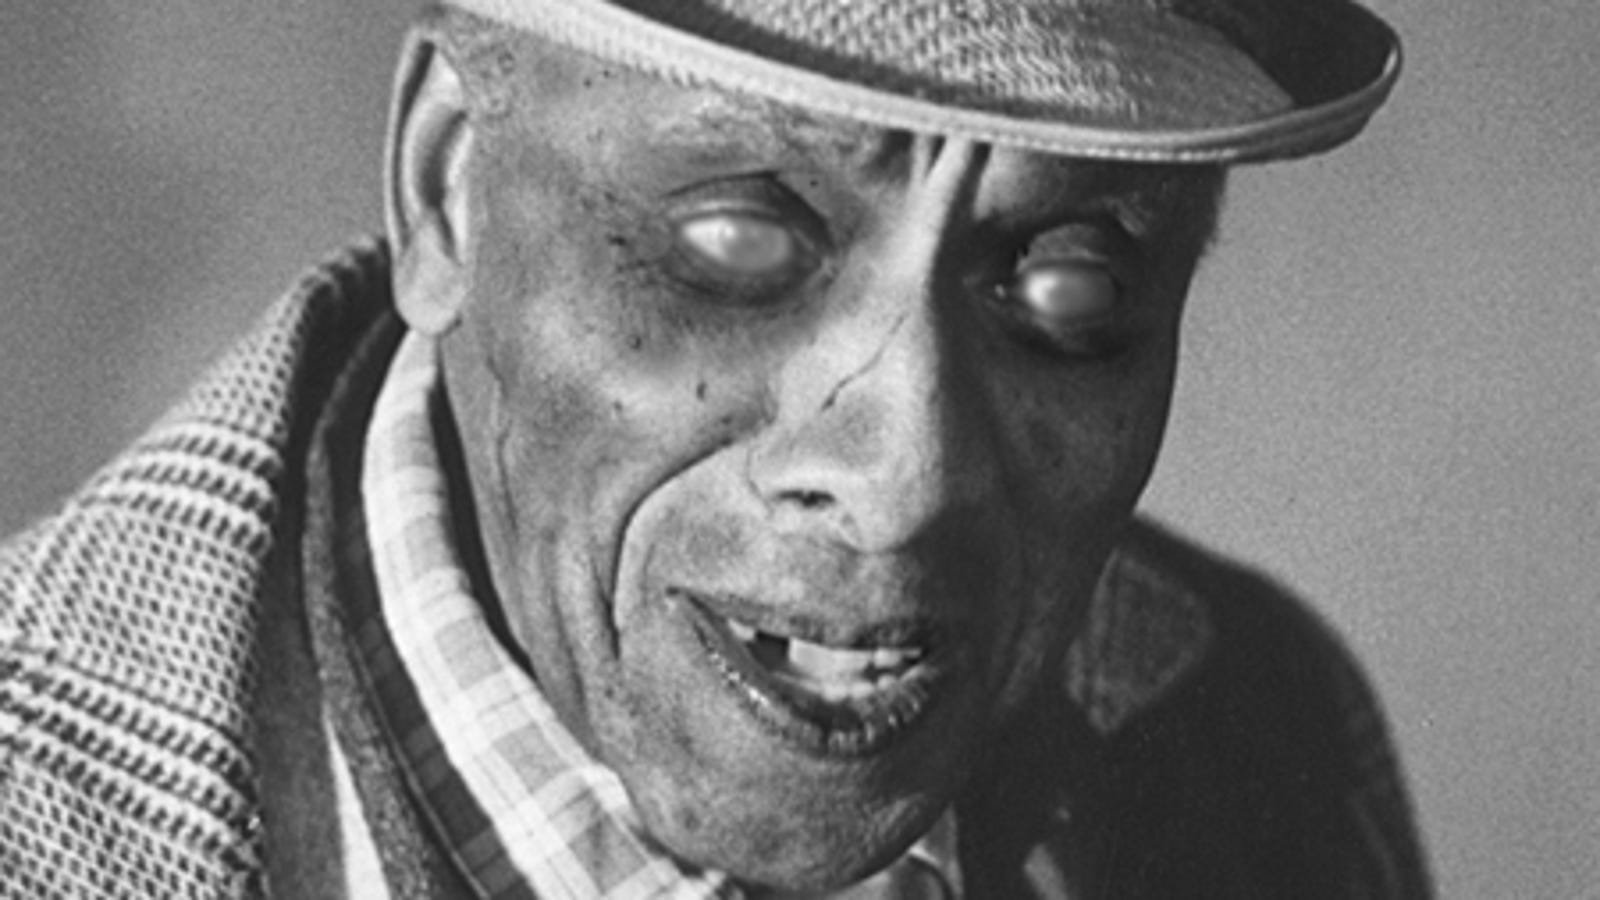 How To Fill A Cavity >> Zombie Corpse Of Scatman Crothers Speaks Out Against Telemarketing Scams